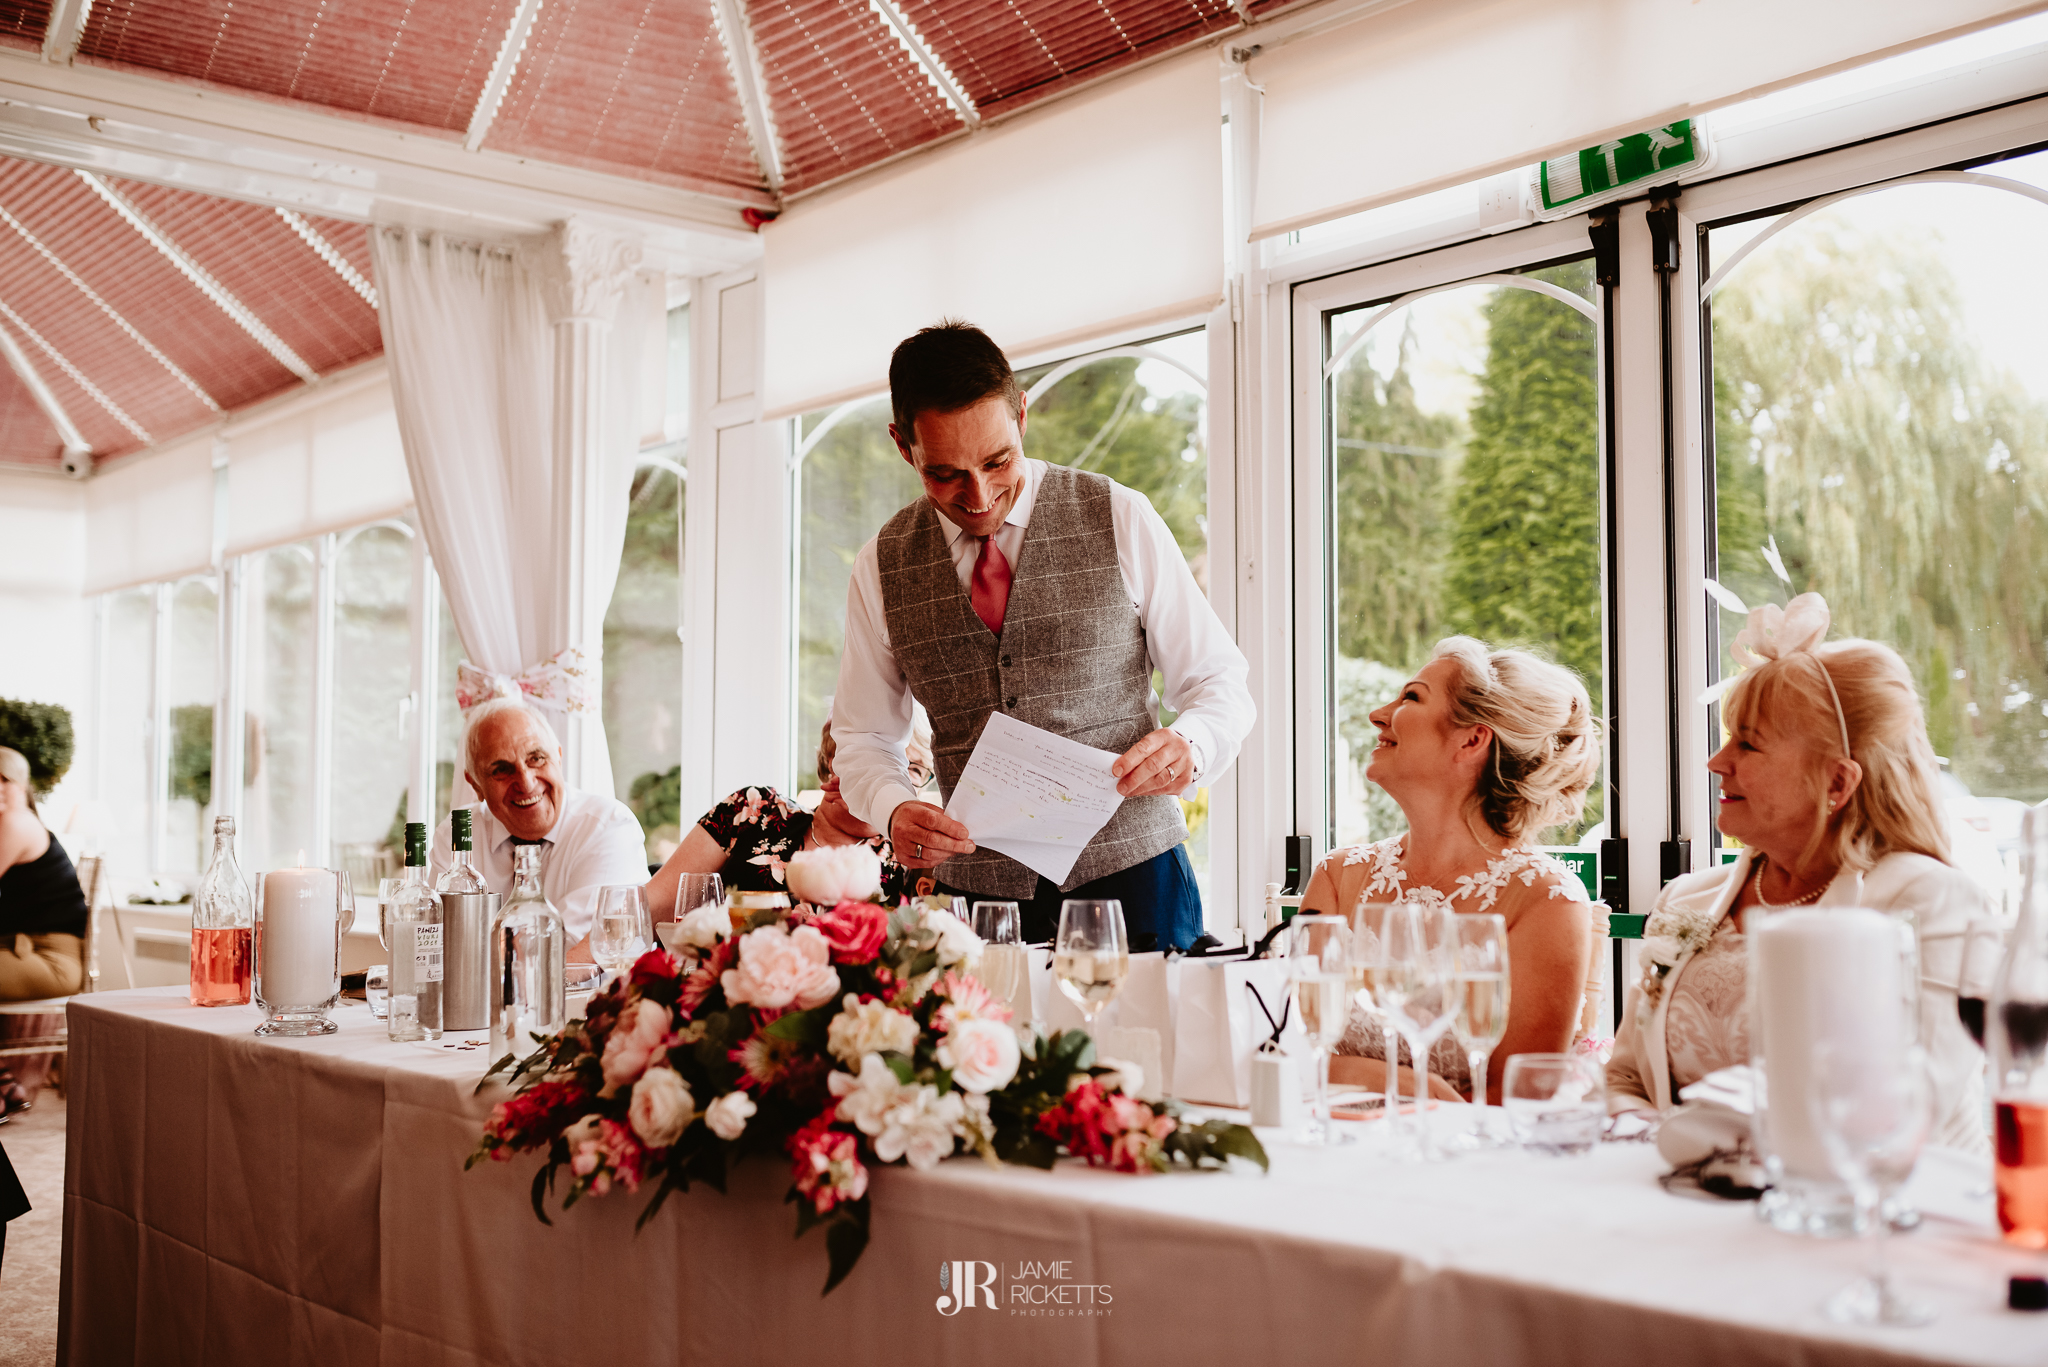 Wroxeter-Hotel-Wedding-Photography-In-Shropshire-By-Shropshire-Wedding-Photographer-Jamie-Ricketts-160.JPG